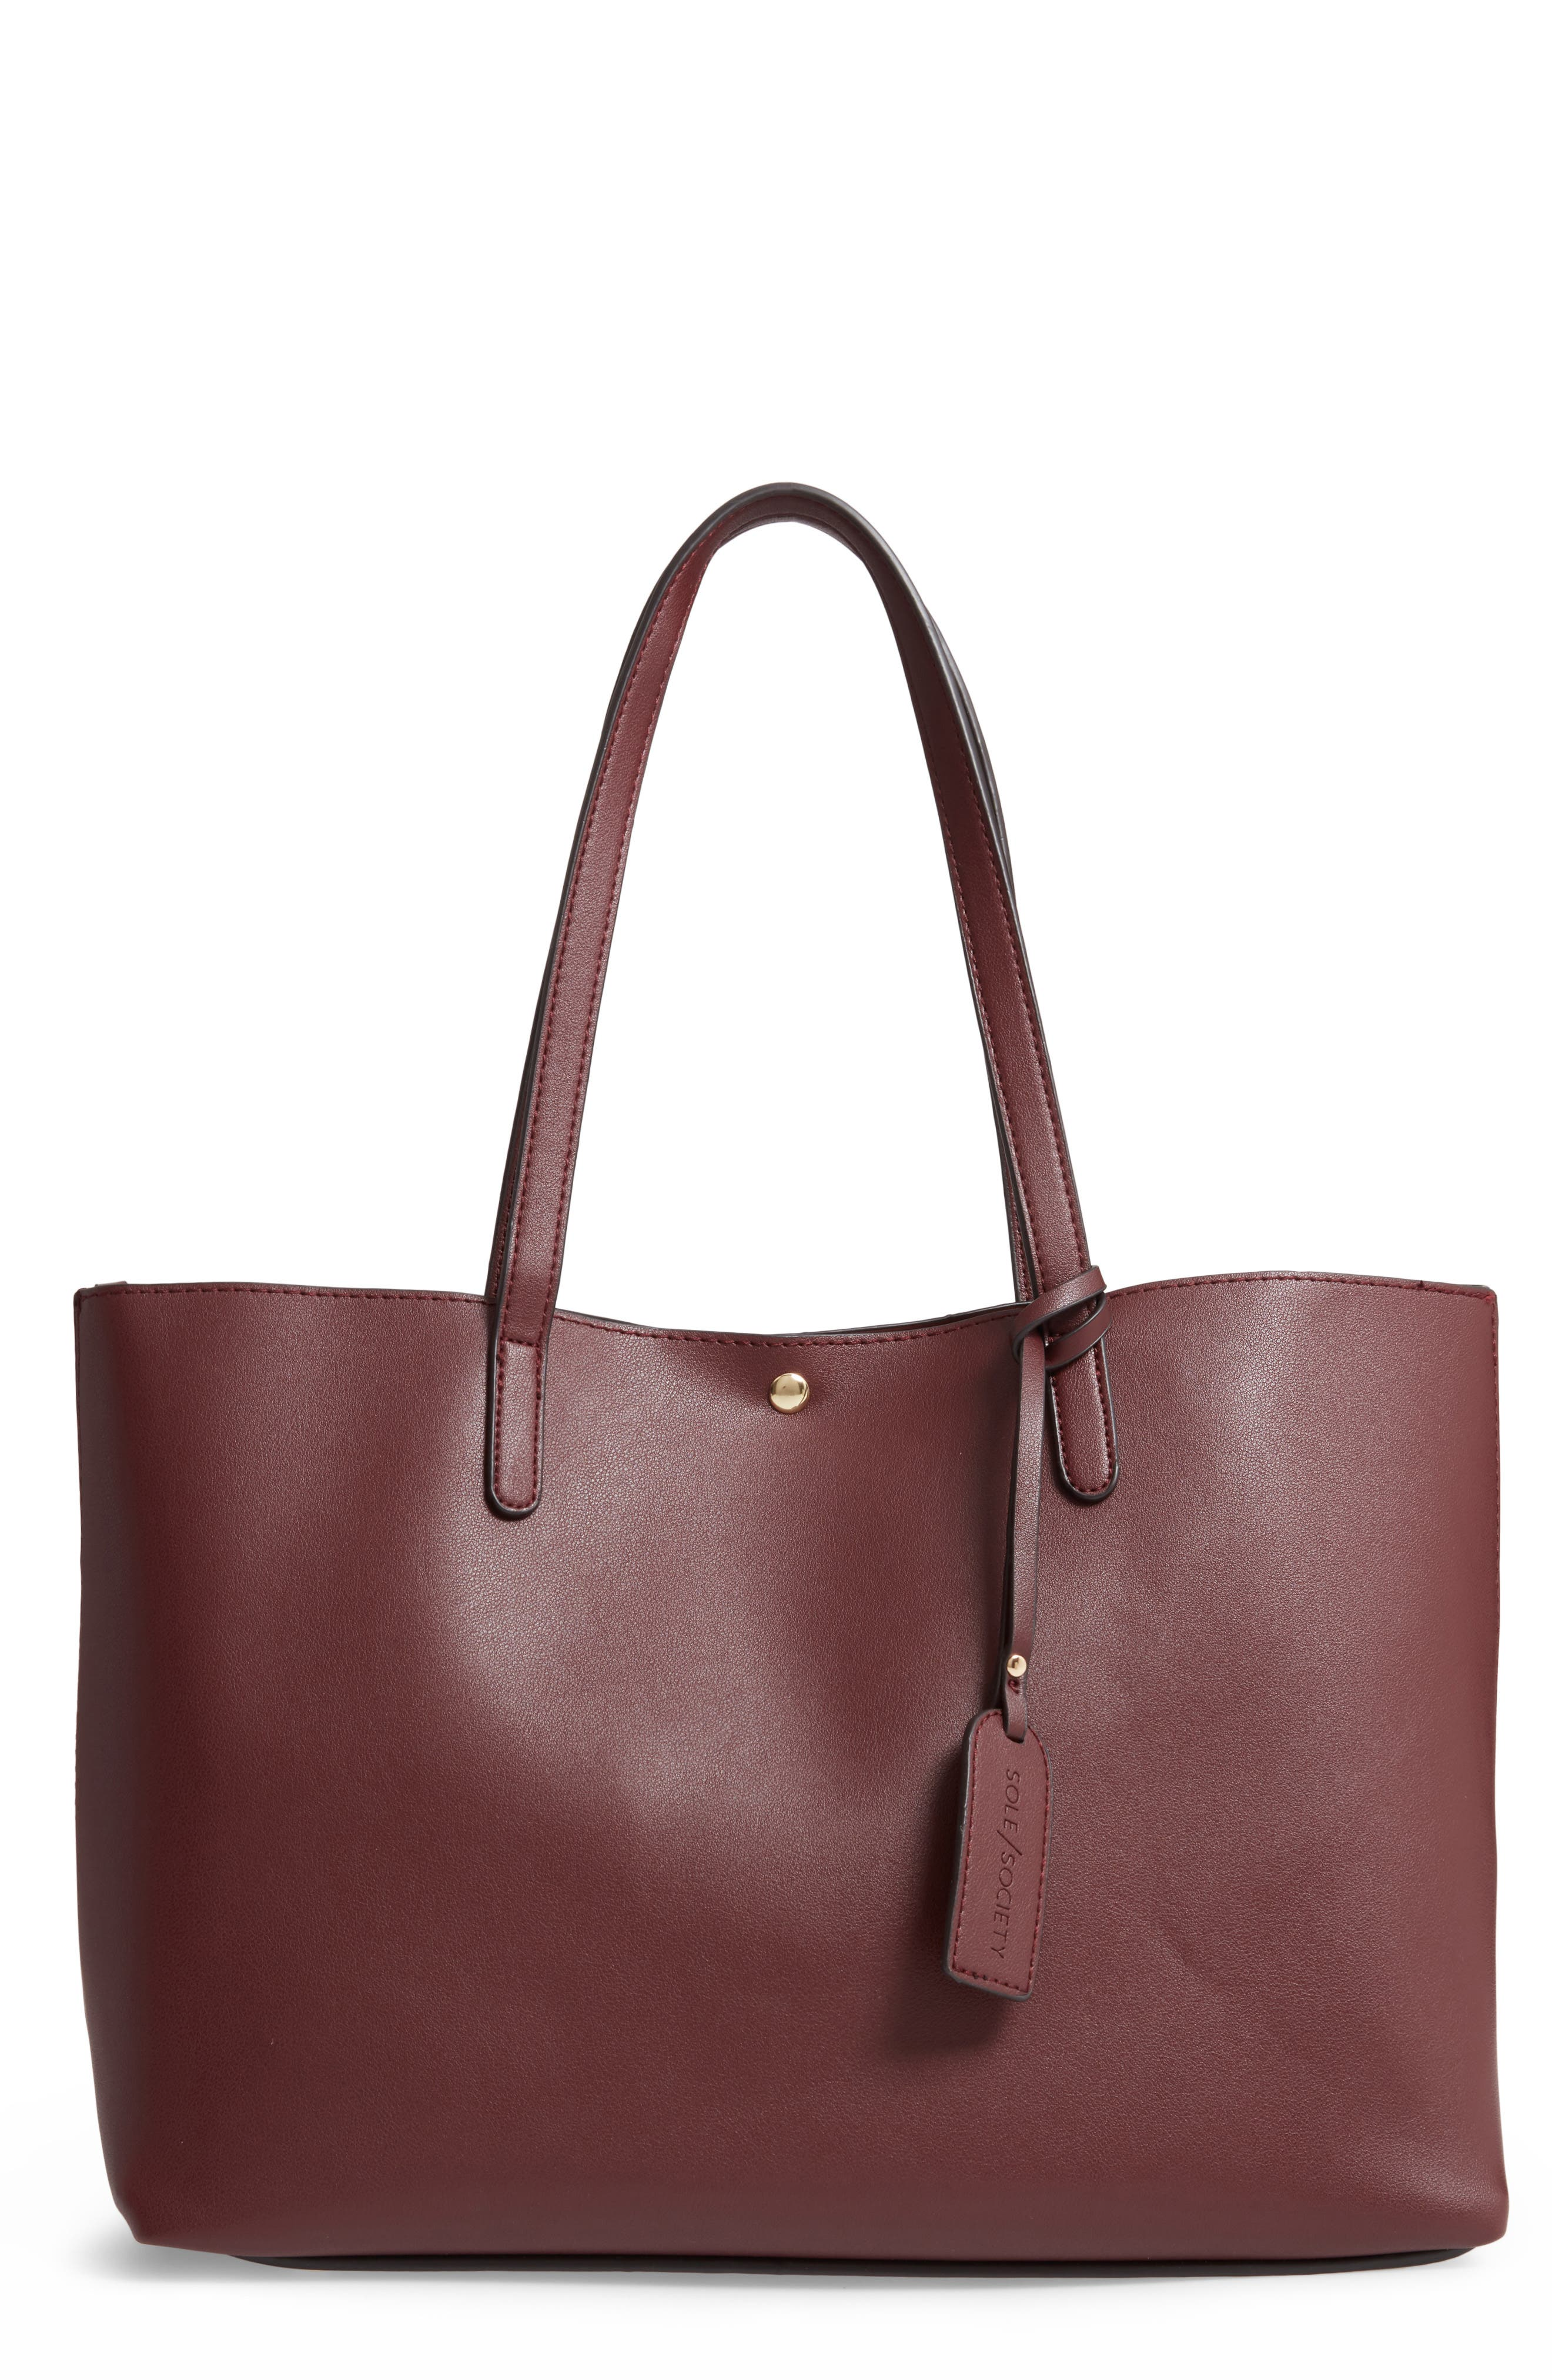 SOLE SOCIETY Zeda Faux Leather Tote, Main, color, 930